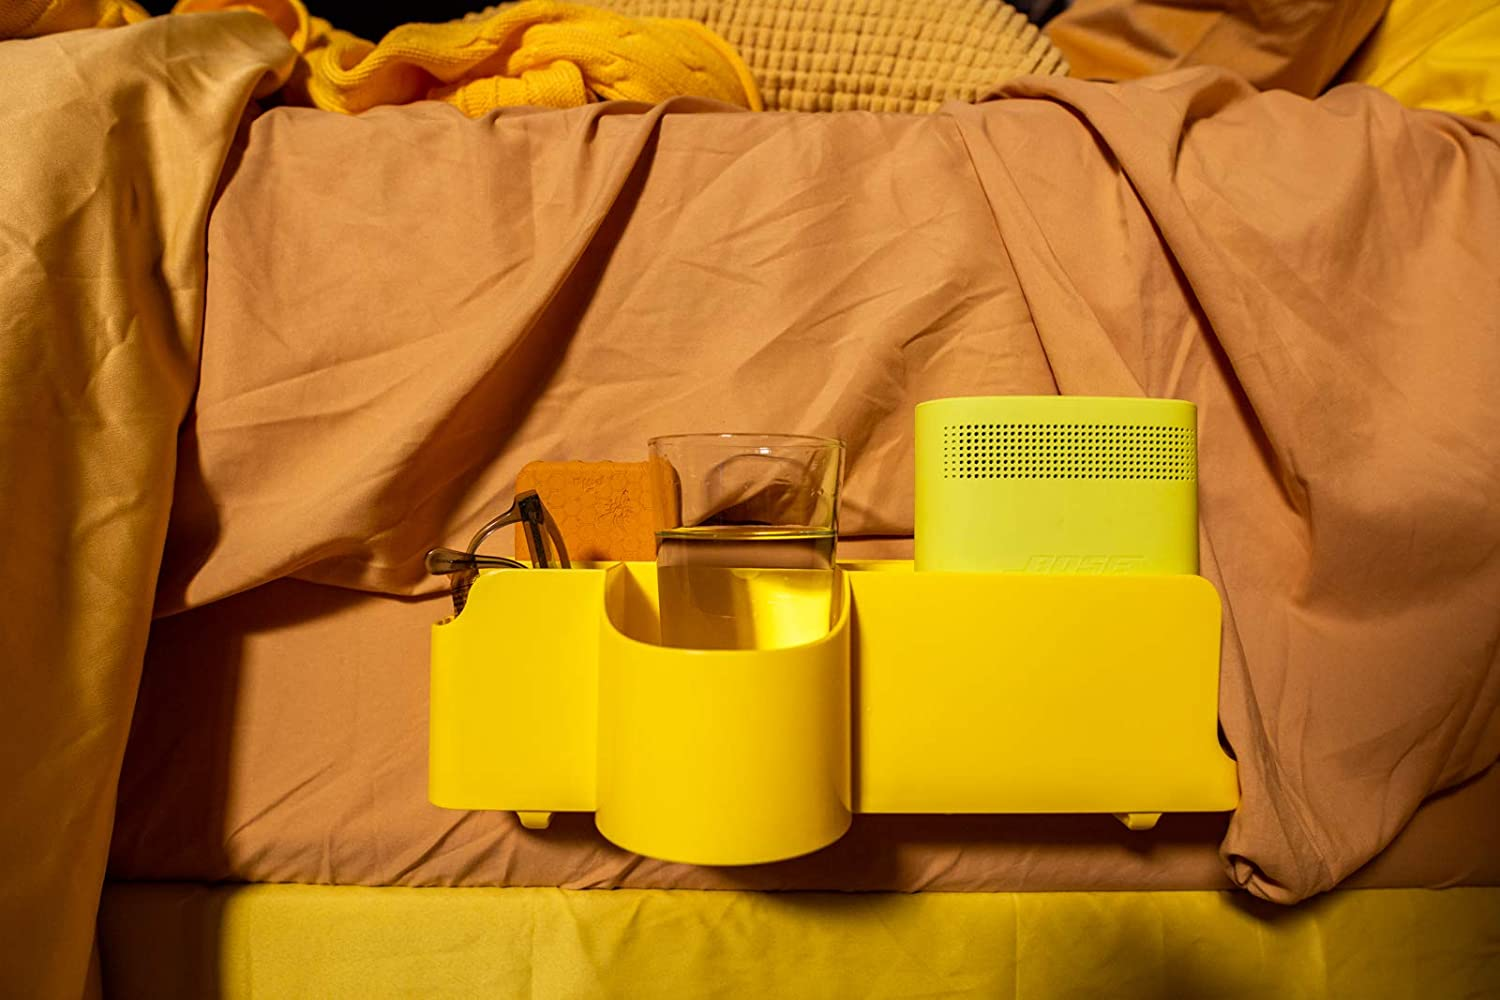 Night Caddy Deluxe Bedside Caddy Organizer - Includes USB Charger Power Cord - Adjustable - Cup Holder - Storage for Bedrooms College Dorms Bunk Beds to Hold Remotes Tablets Laptops Phones - Yellow